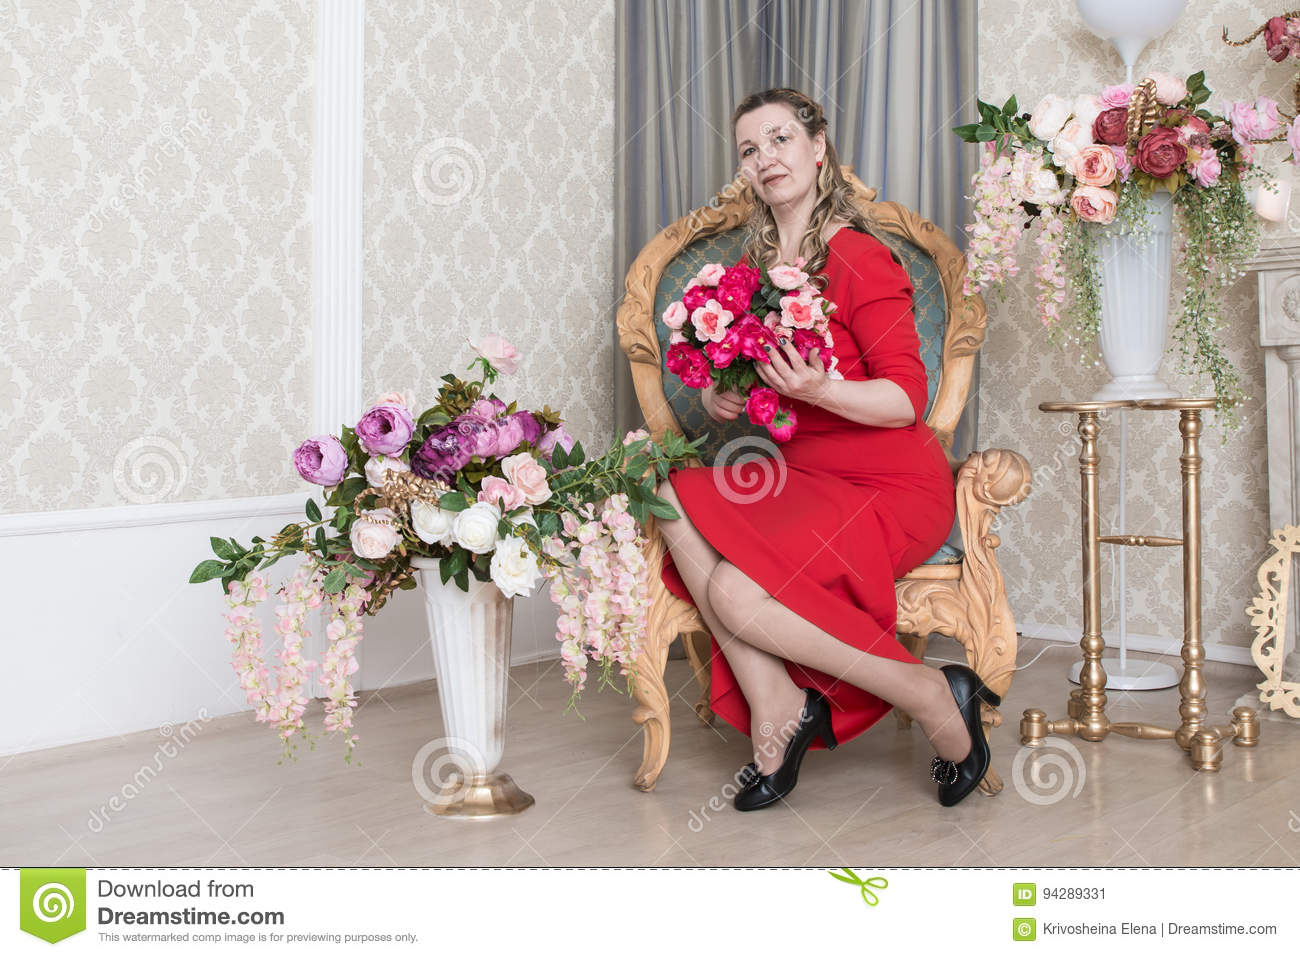 f5b6b1197 Ugly Domineering Woman Is Posing In Red Dress Stock Image - Image of ...